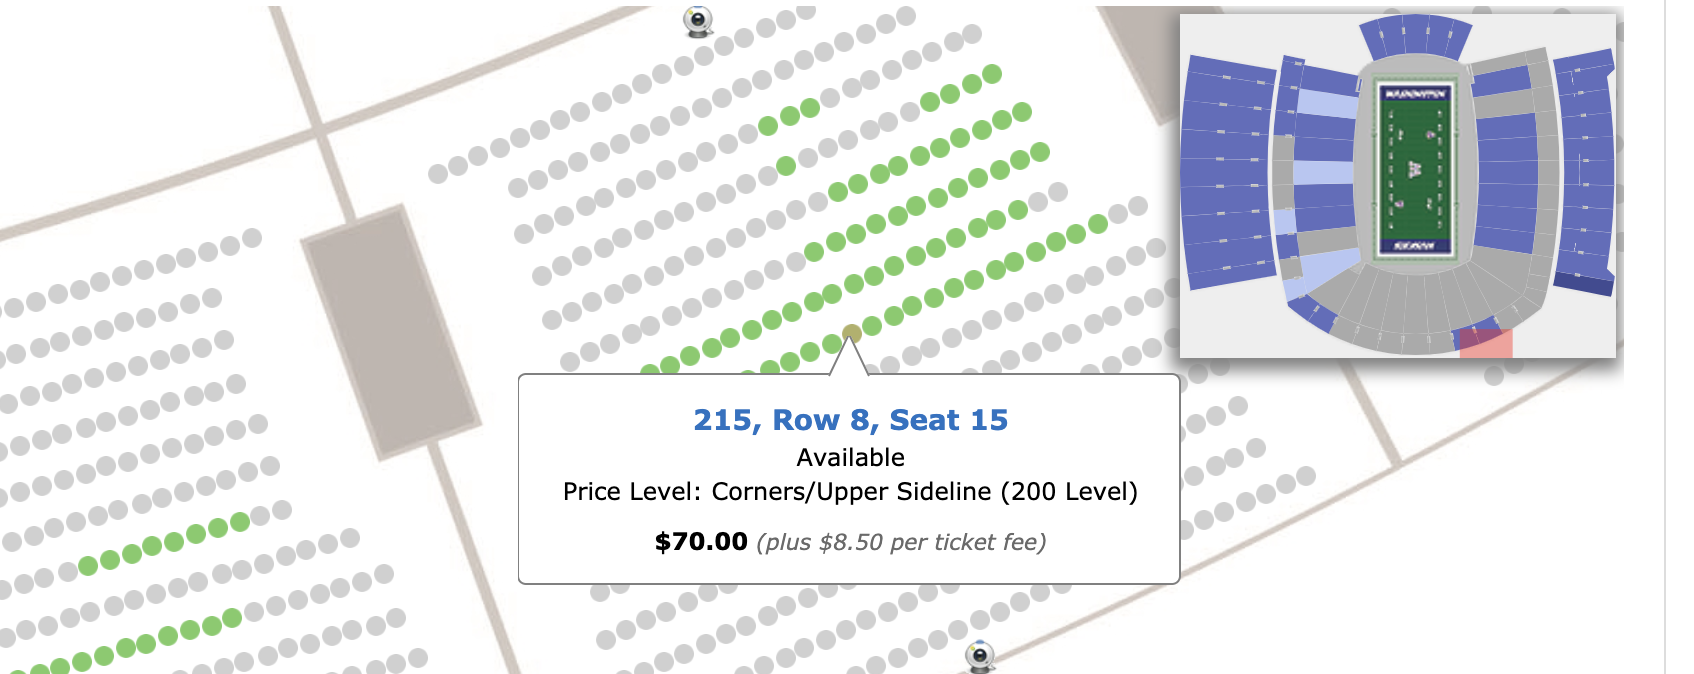 How To Find The Cheapest Washington vs Hawaii Tickets - 9/14/19